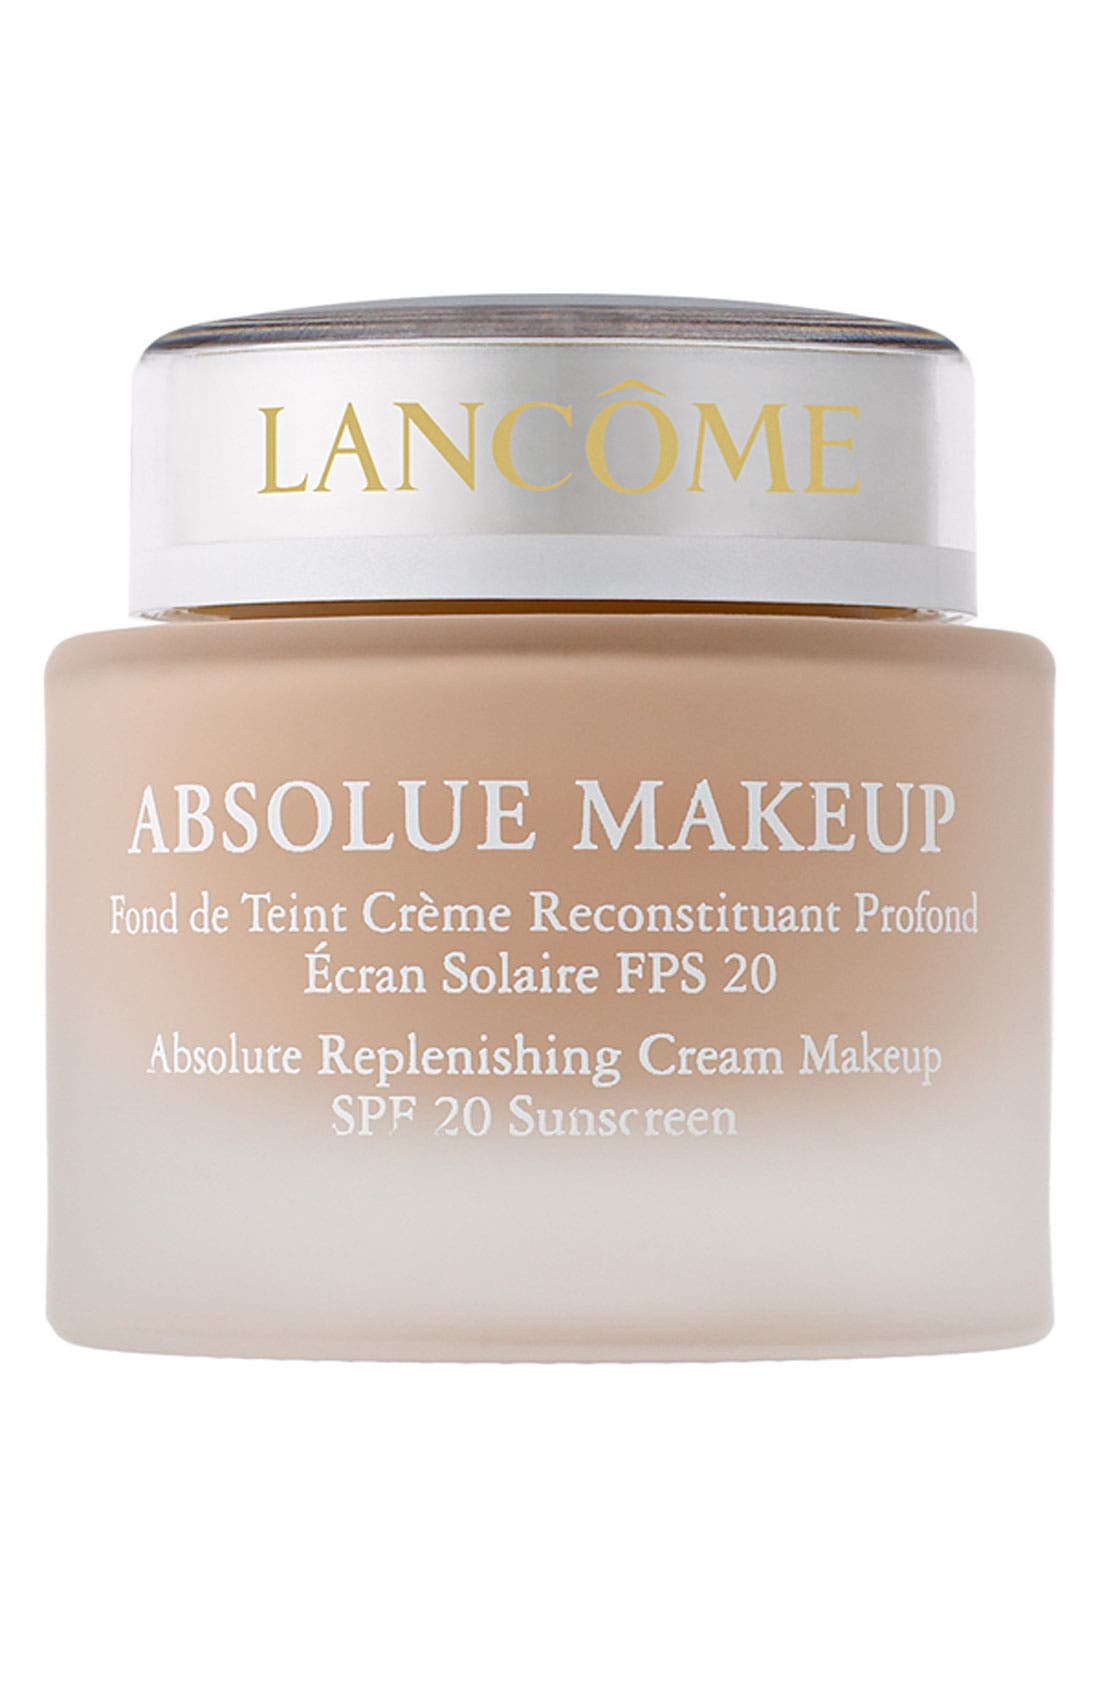 Absolue Replenishing Cream Makeup SPF 20,                         Main,                         color, ABSOLUTE ECRU 20 (C)